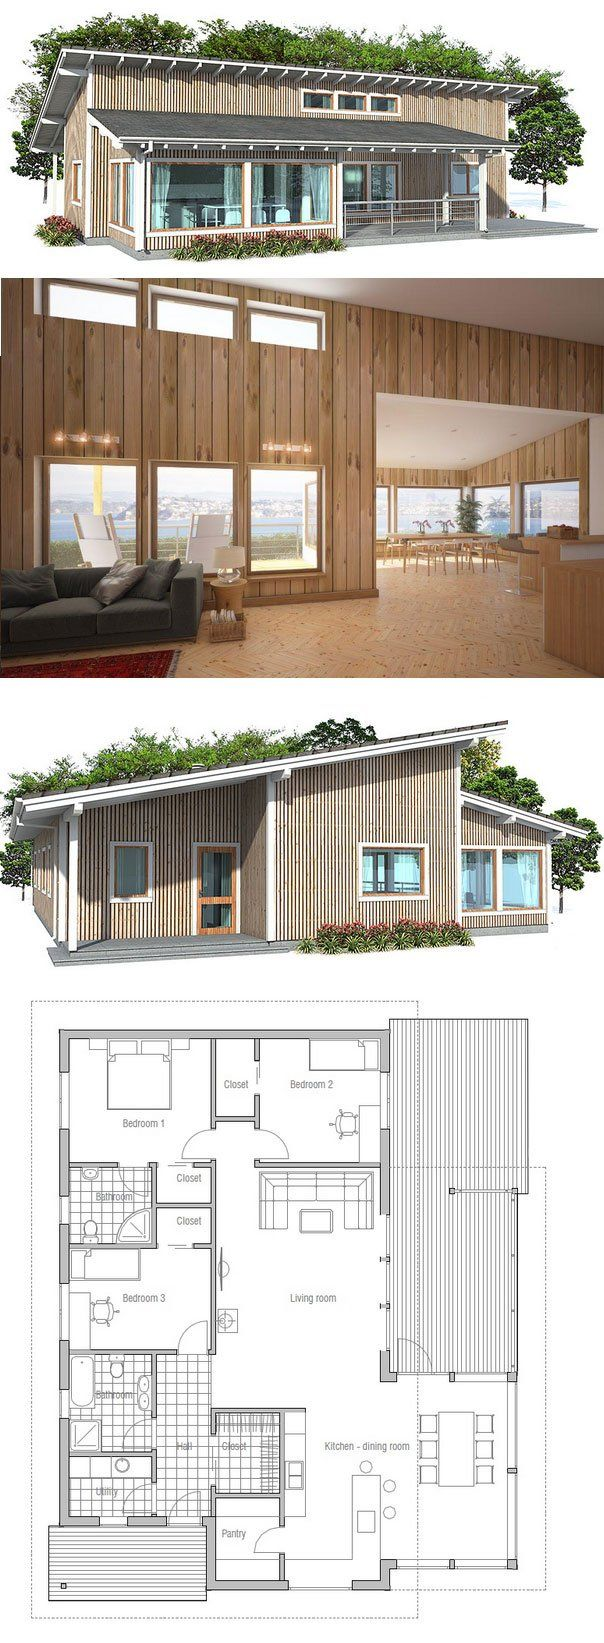 Small home design simple lines and spacious interior for Simple affordable house plans